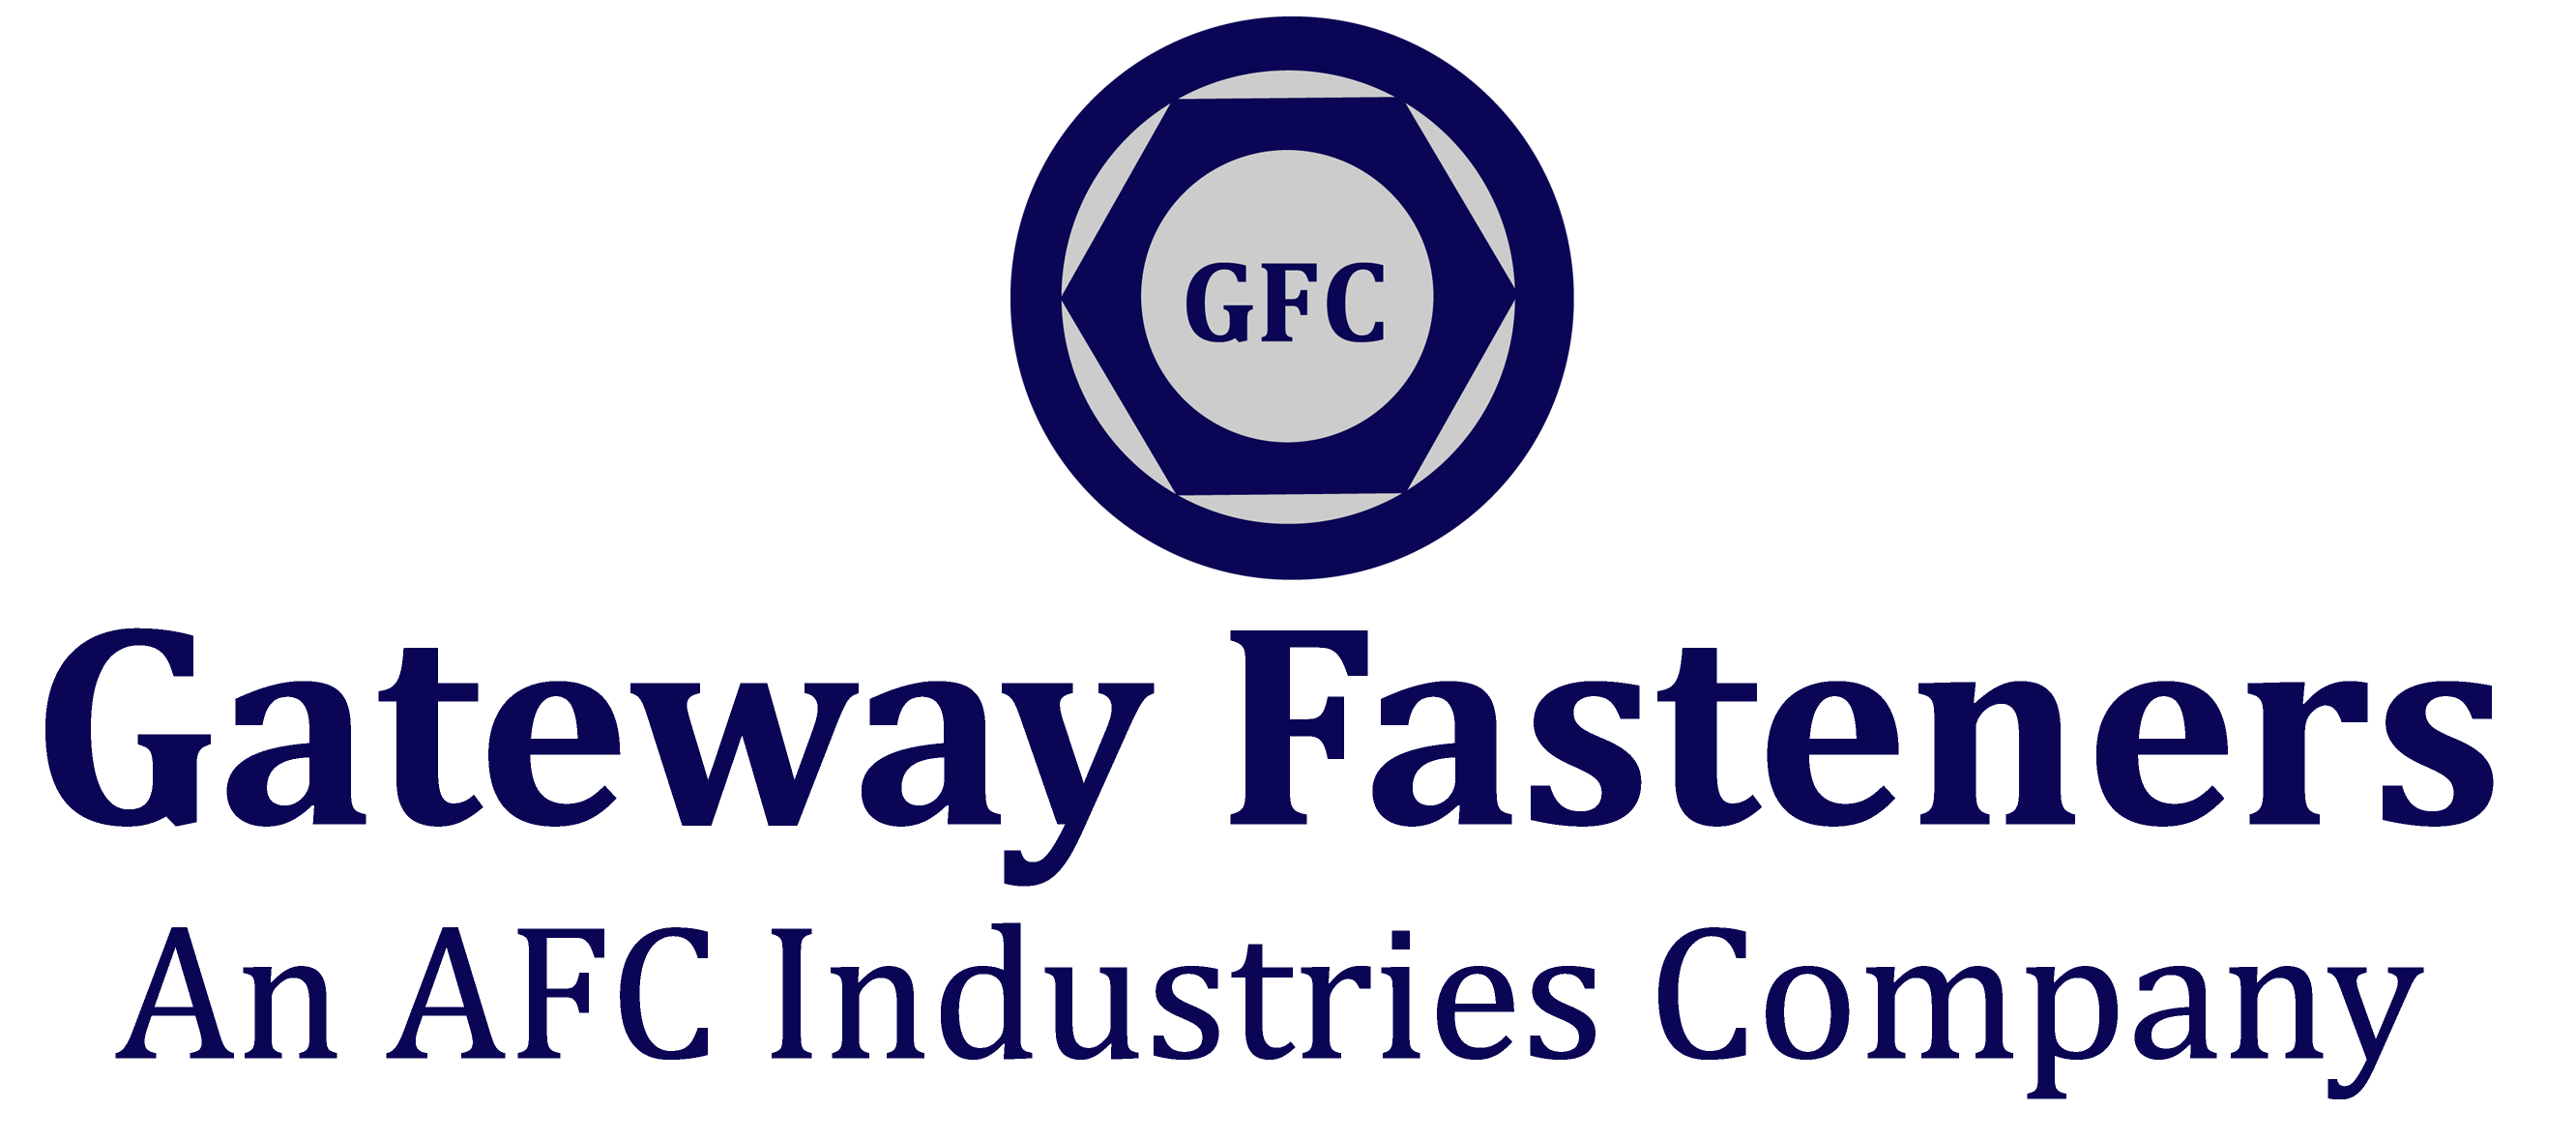 Gateway Fasteners - an AFC Industries Company